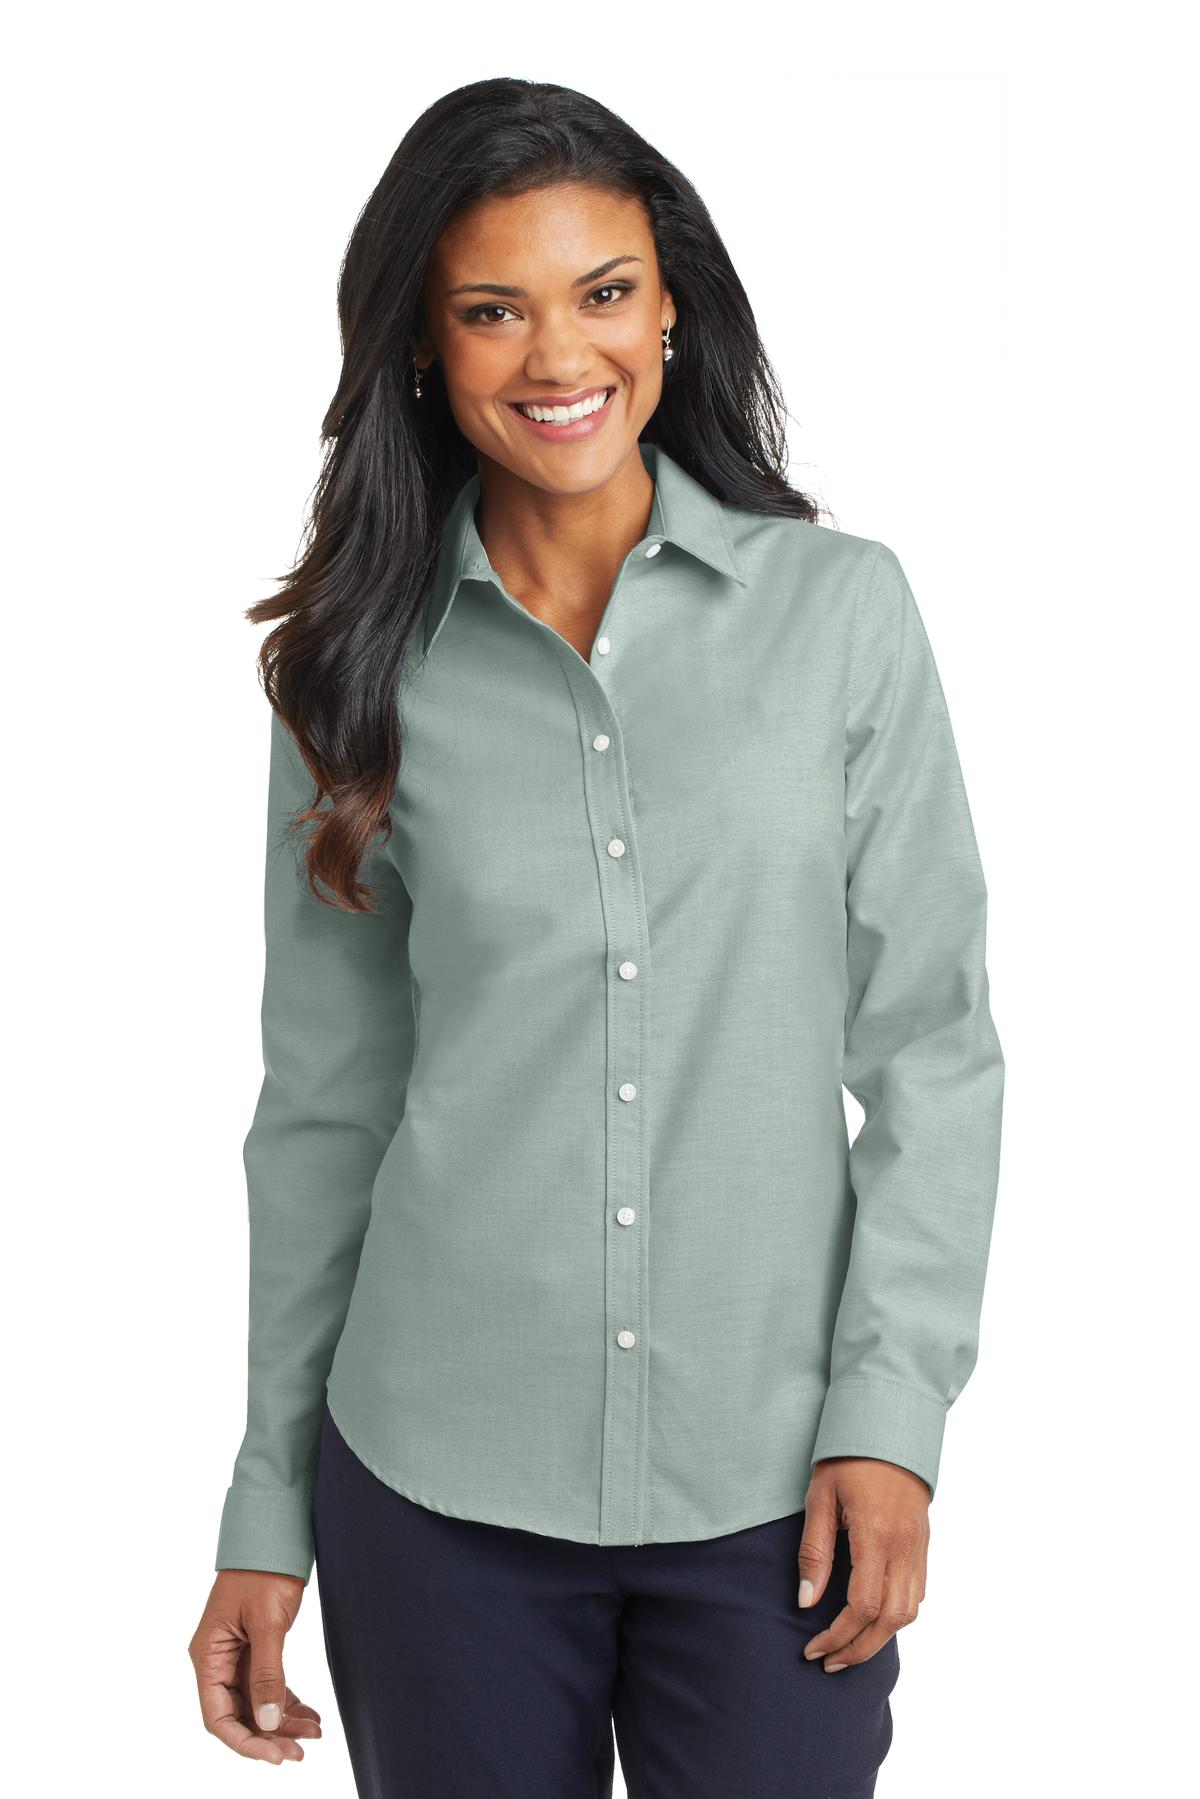 Port Authority ®  Ladies SuperPro ™  Oxford Shirt. L658 - Green